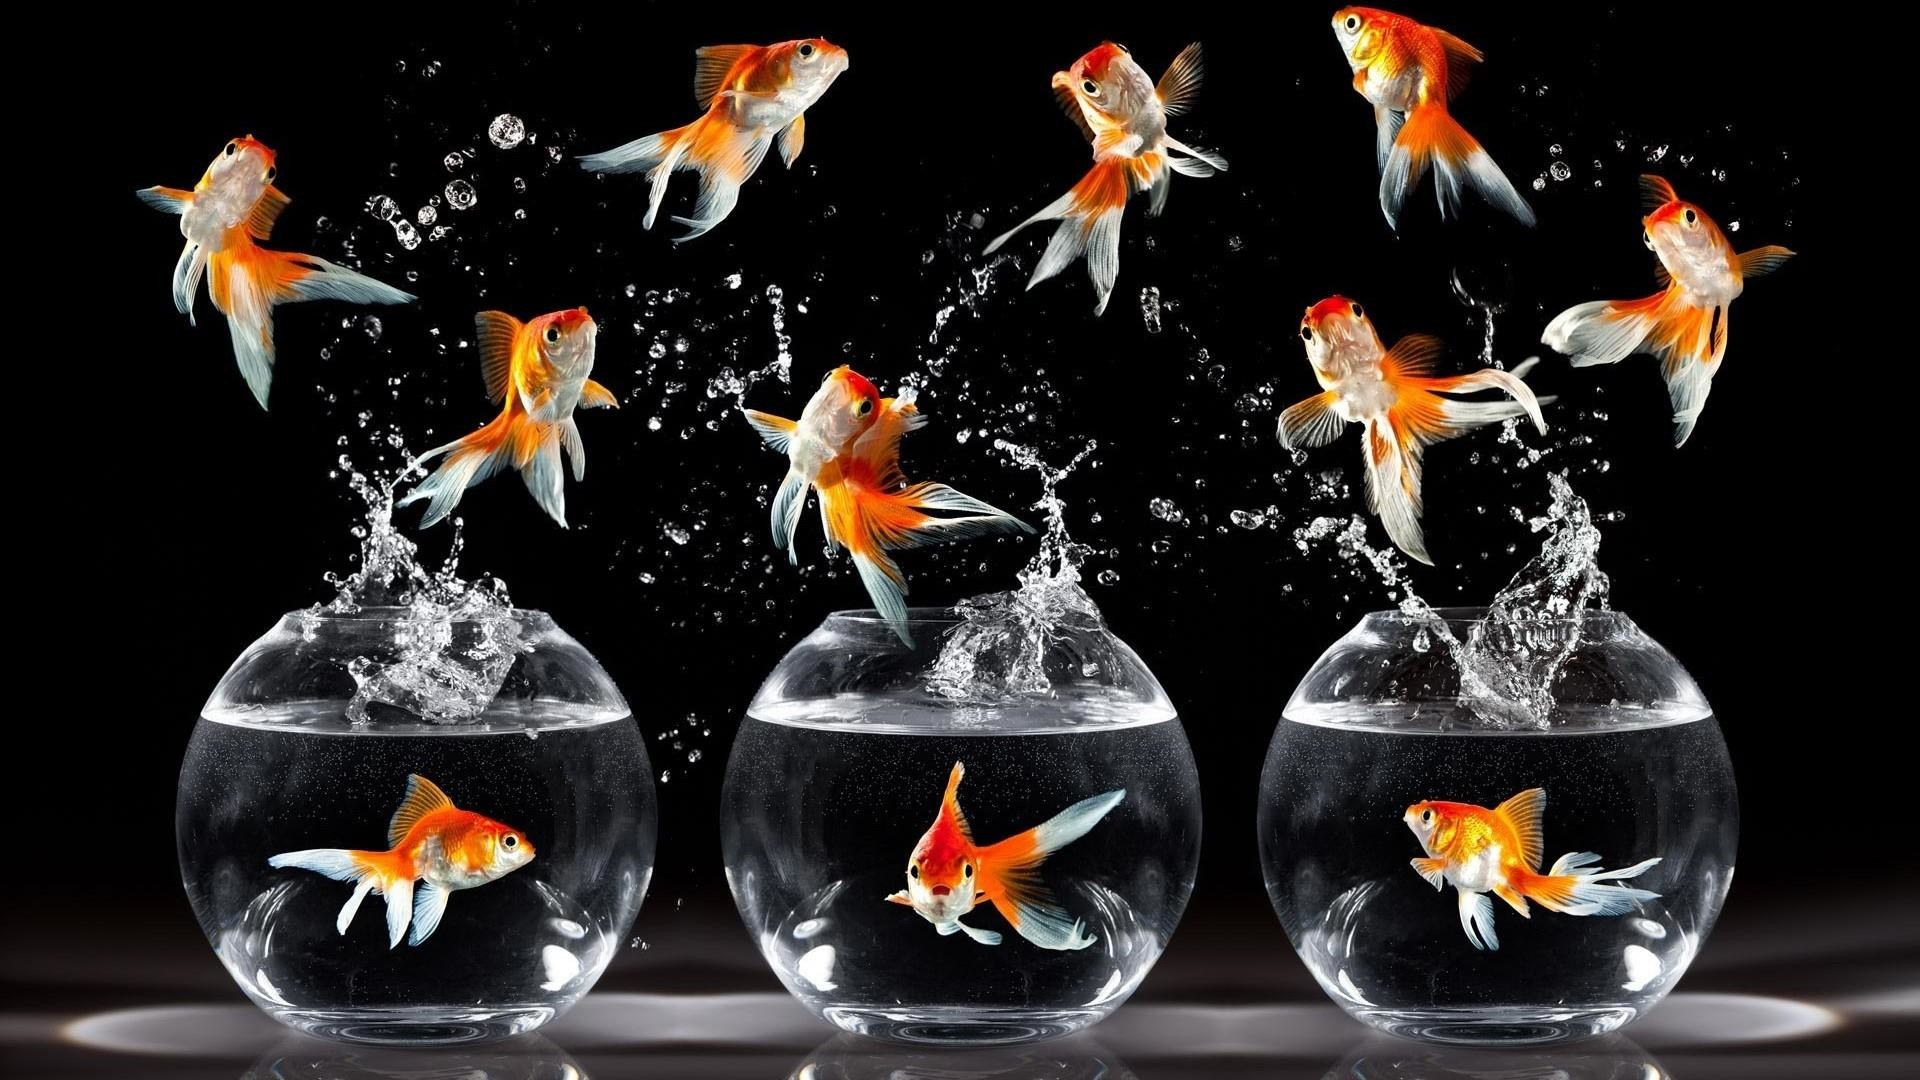 Res: 1920x1080, Goldfish In The Aquarium Wallpaper | Wallpaper Studio 10 | Tens of  thousands HD and UltraHD wallpapers for Android, Windows and Xbox